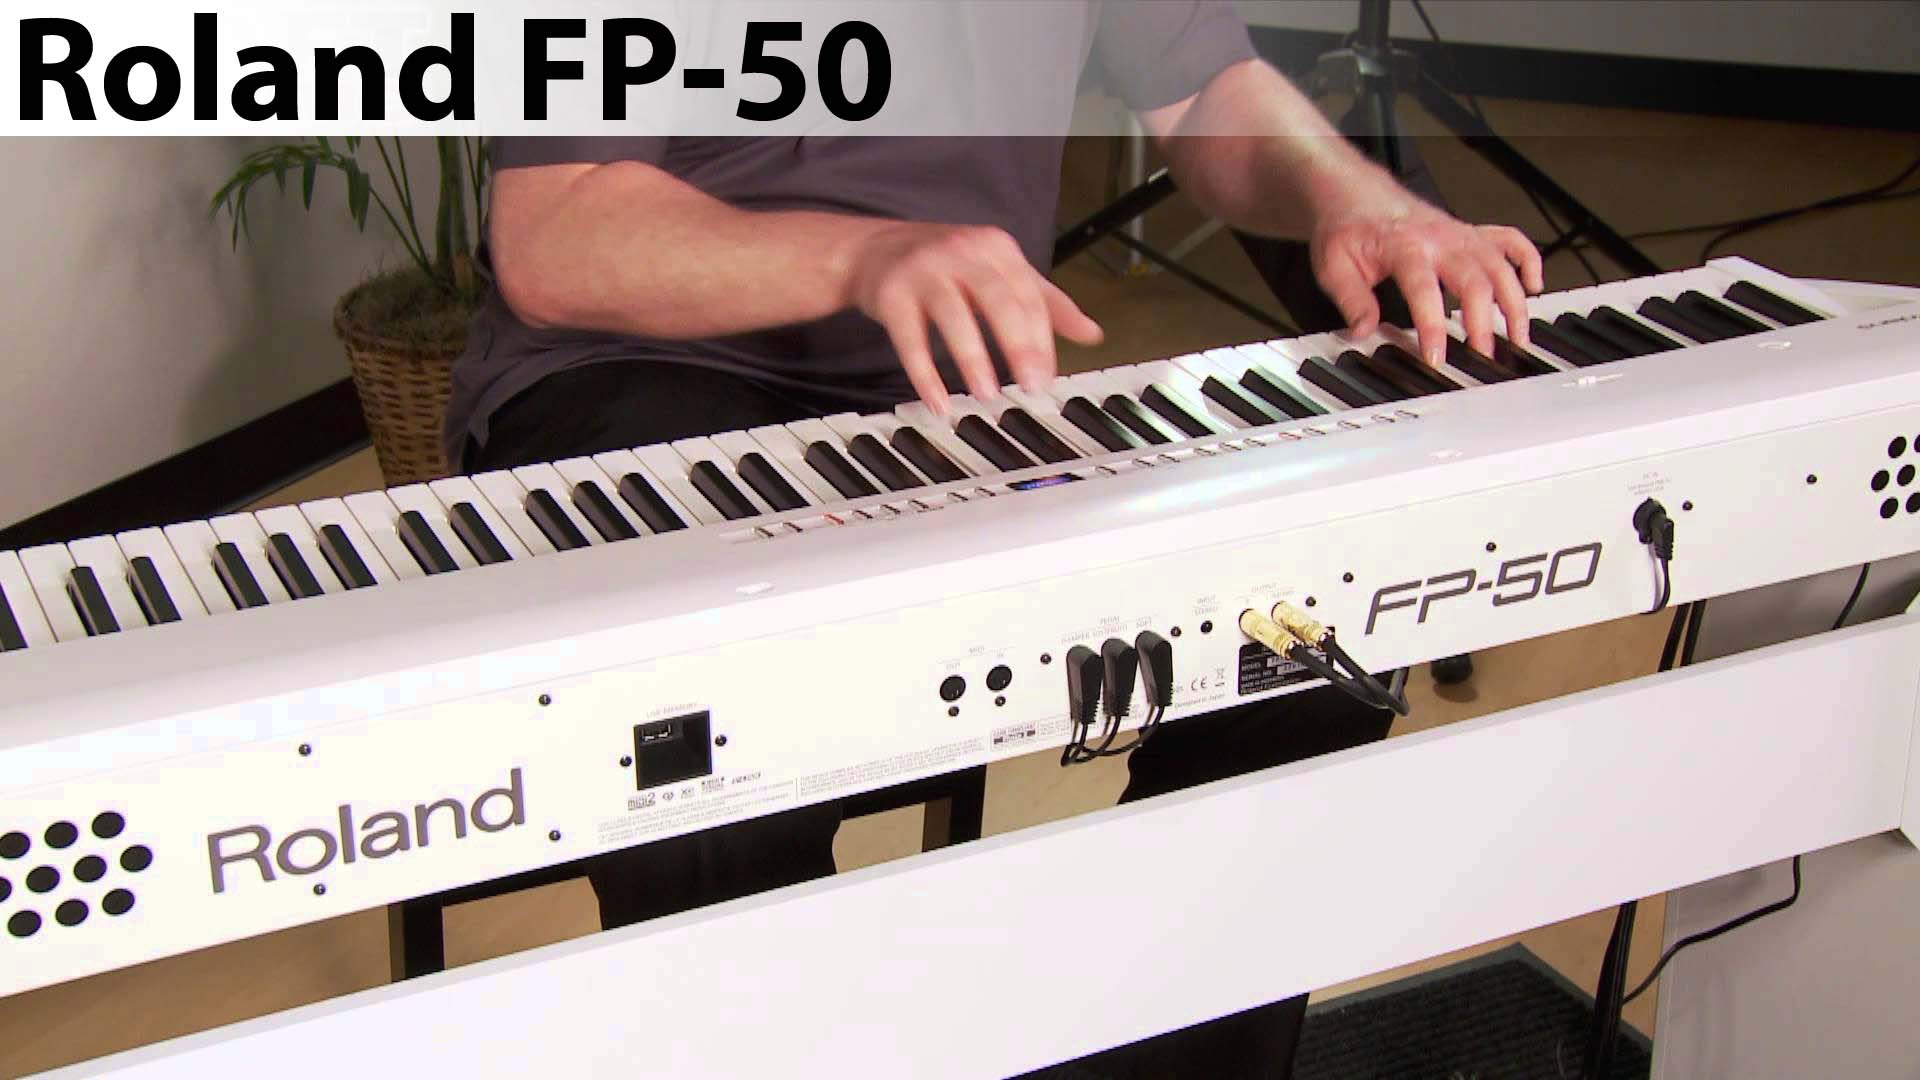 piano digital roland fp-50